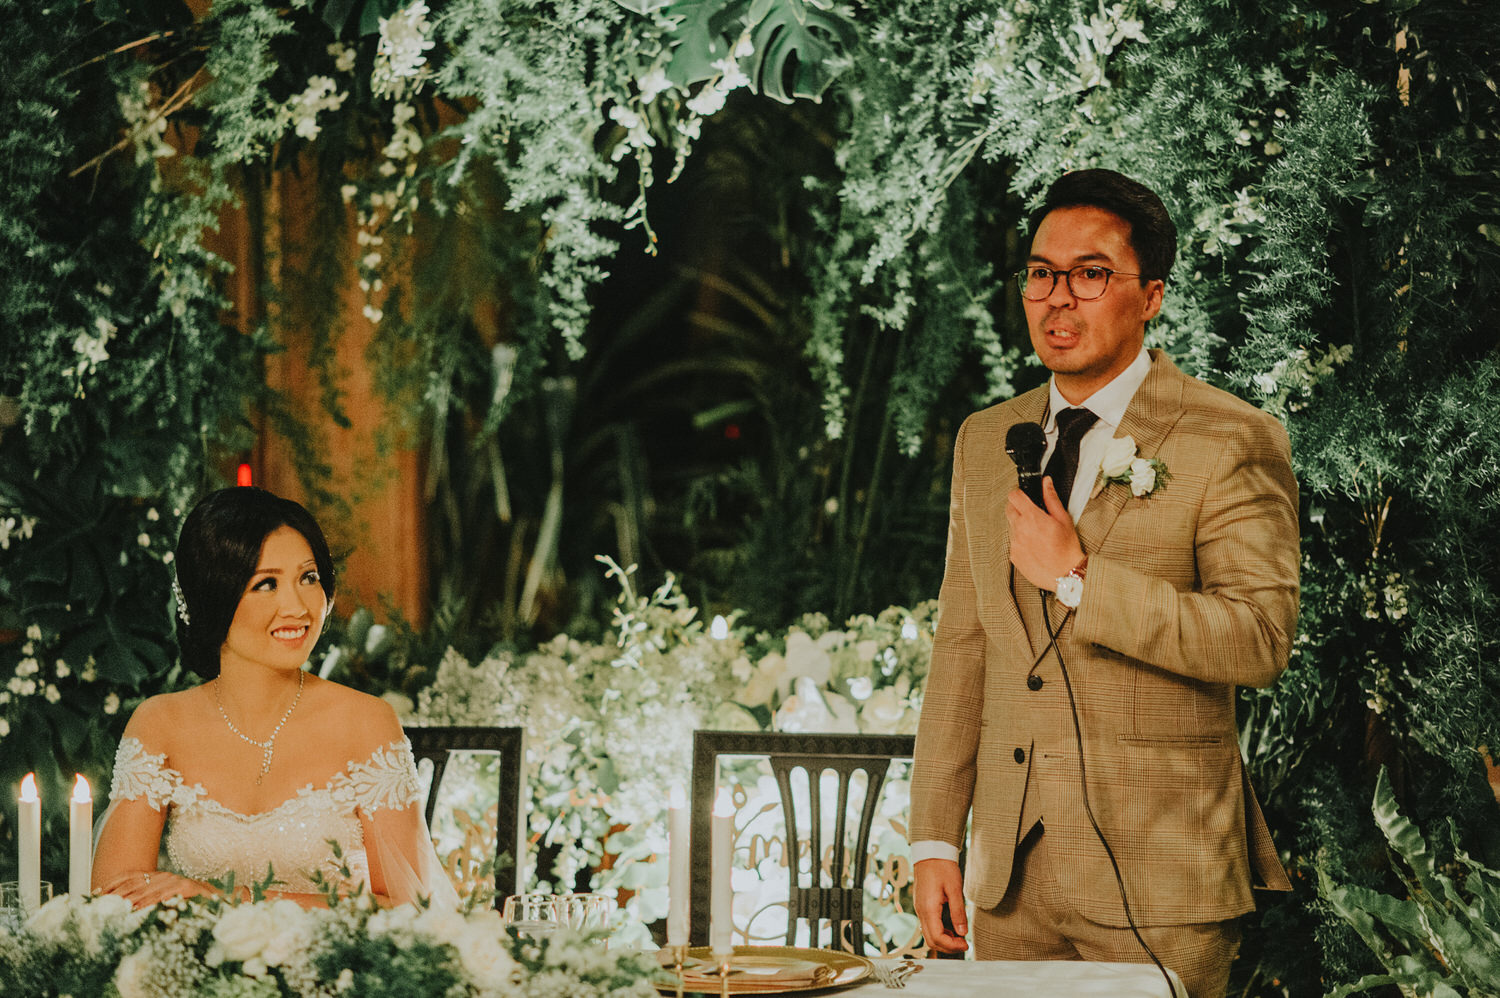 jakarta wedding-destination wedding-bali wedding photographer-diktatphotography-kadek artayasa-jason+devi-134